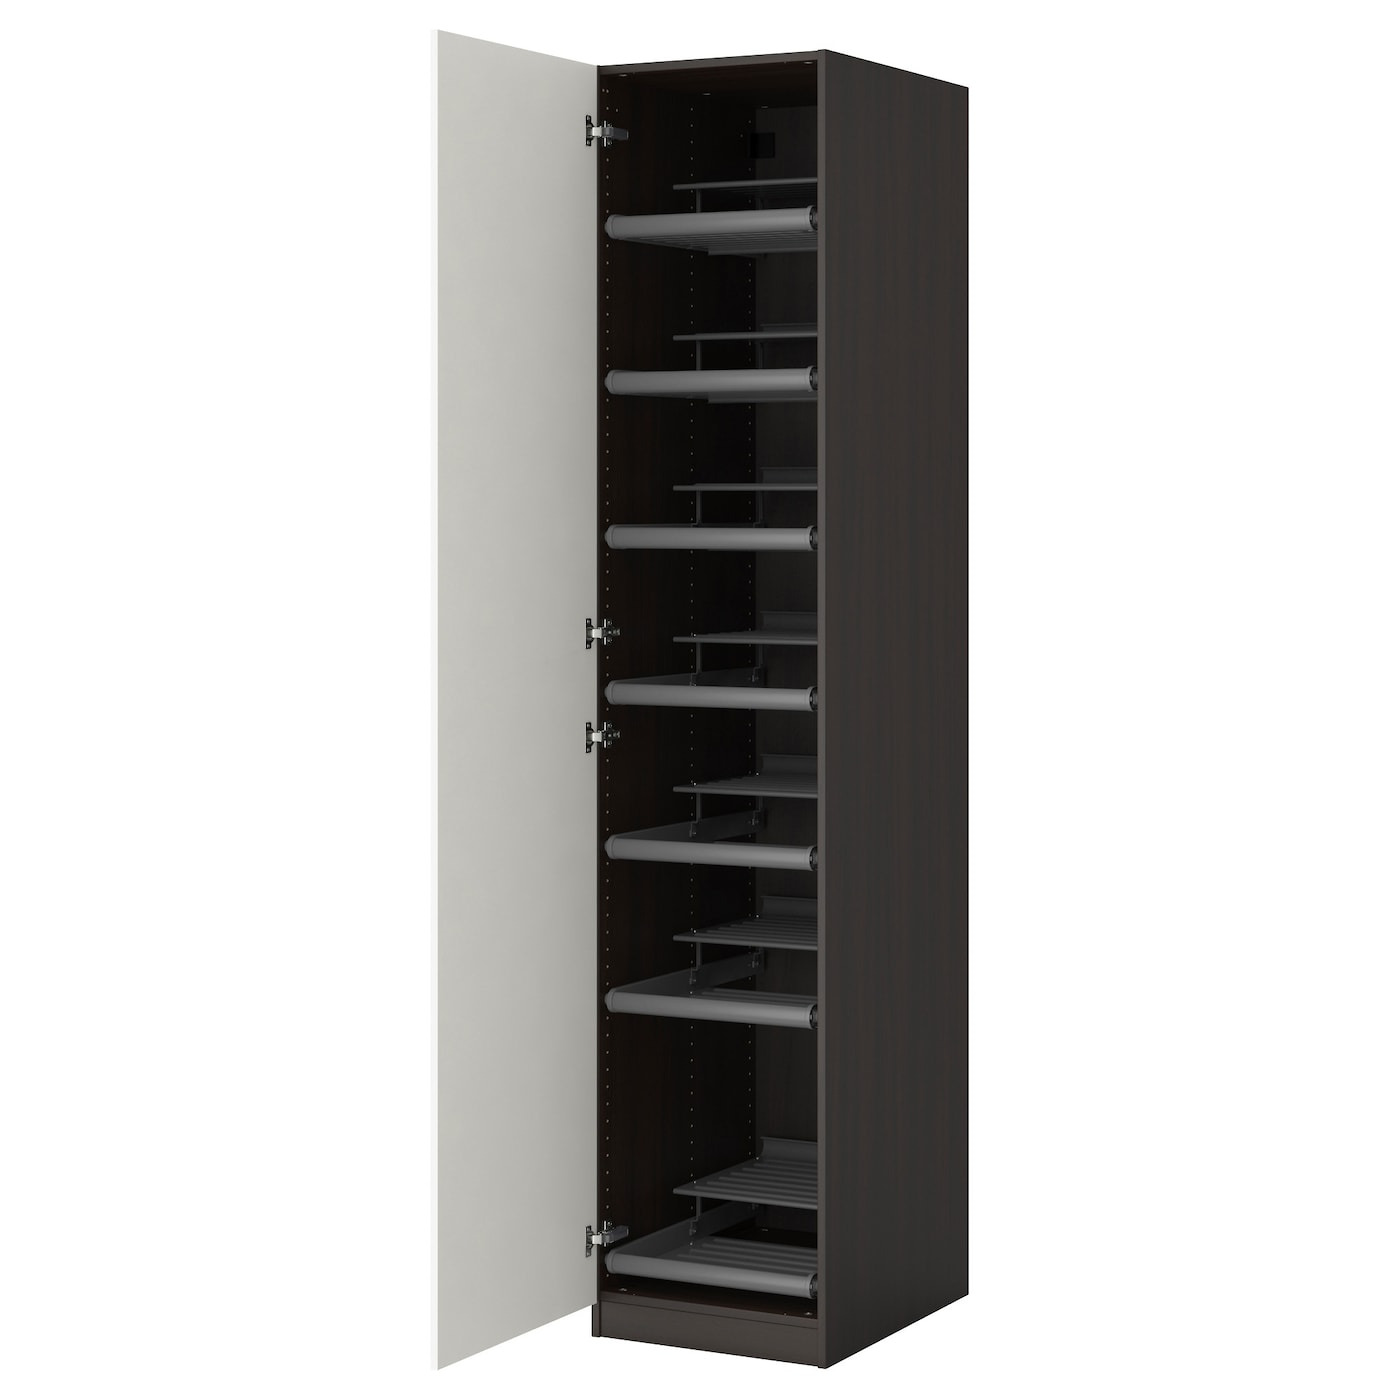 Pax wardrobe black brown ballstad white 50x60x236 cm ikea for Armoire de rangement cuisine ikea